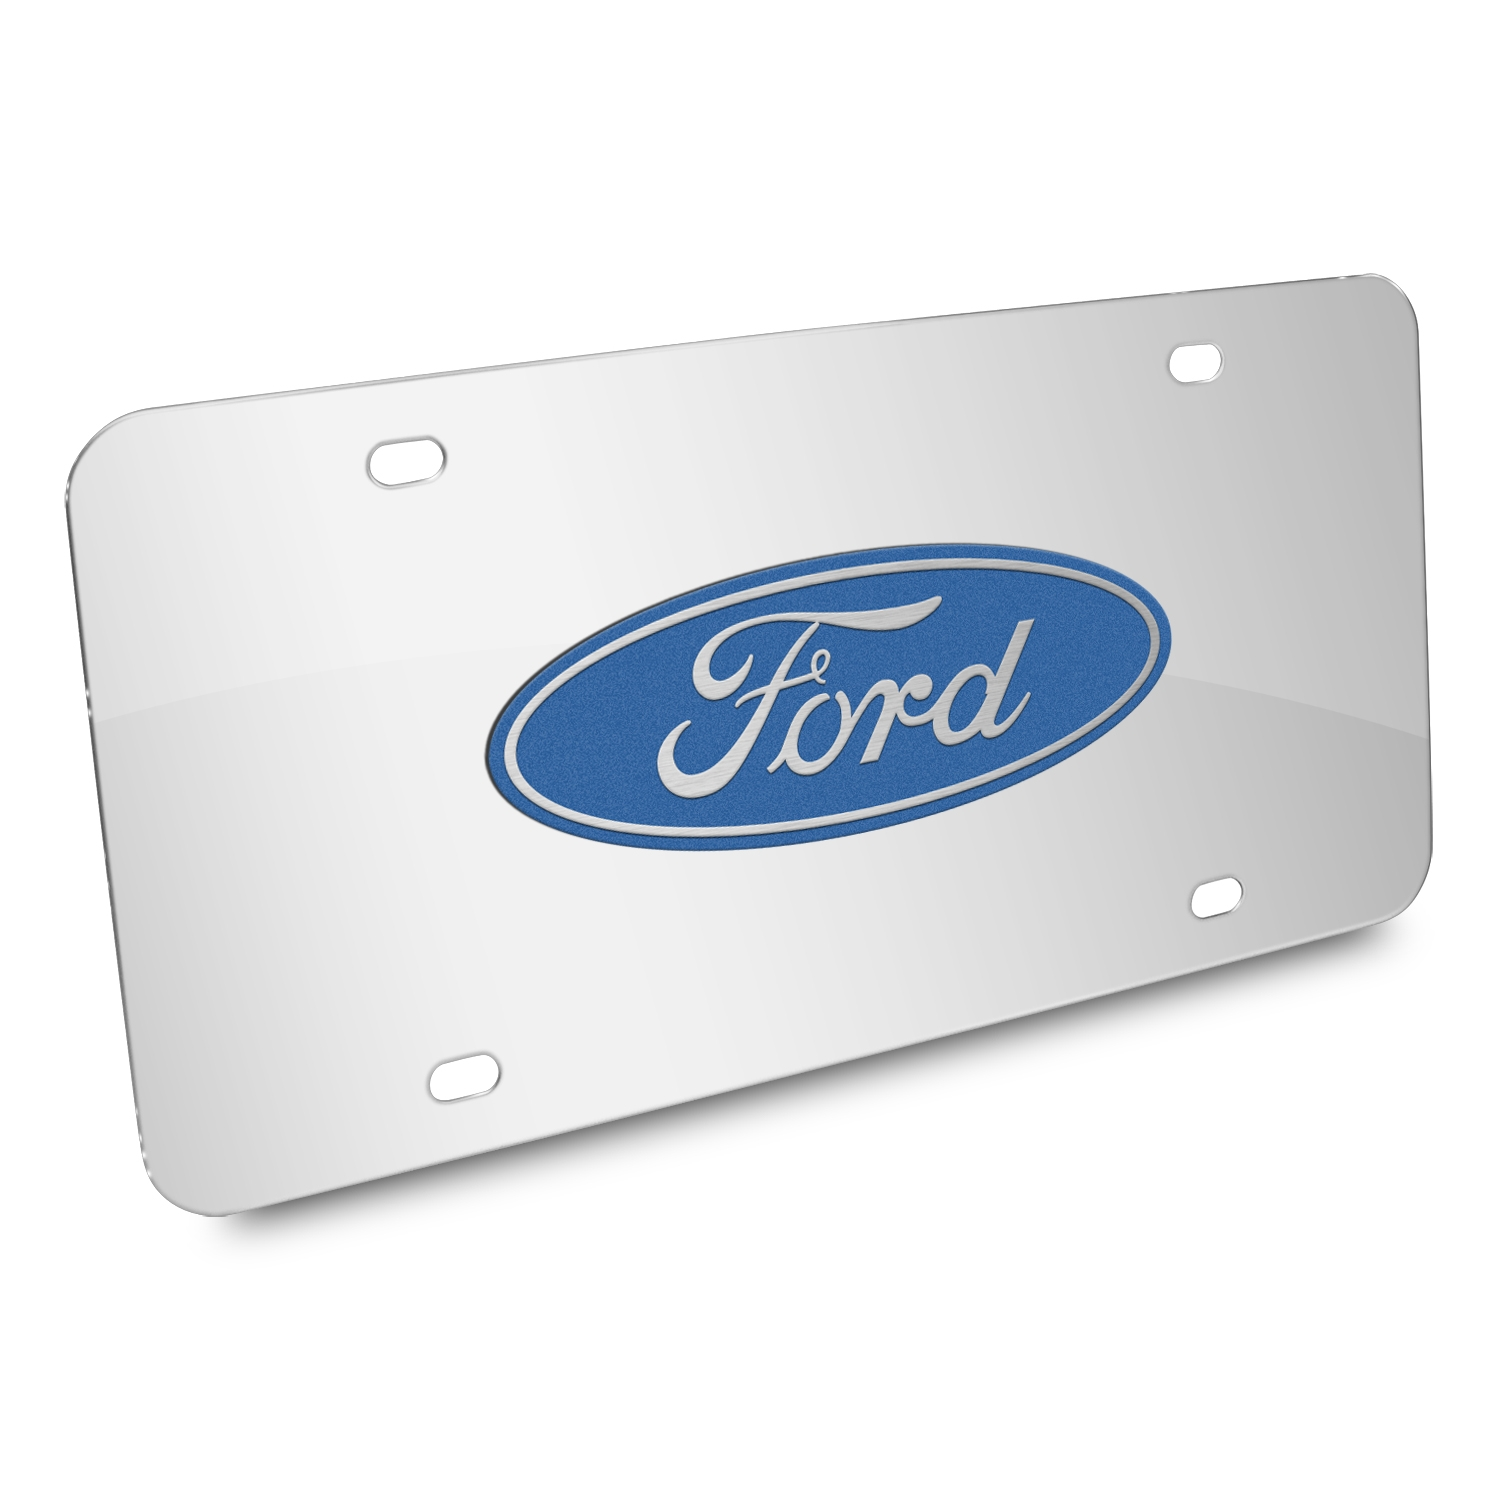 Ford Logo 3D Mirror Chrome Stainless Steel License Plate